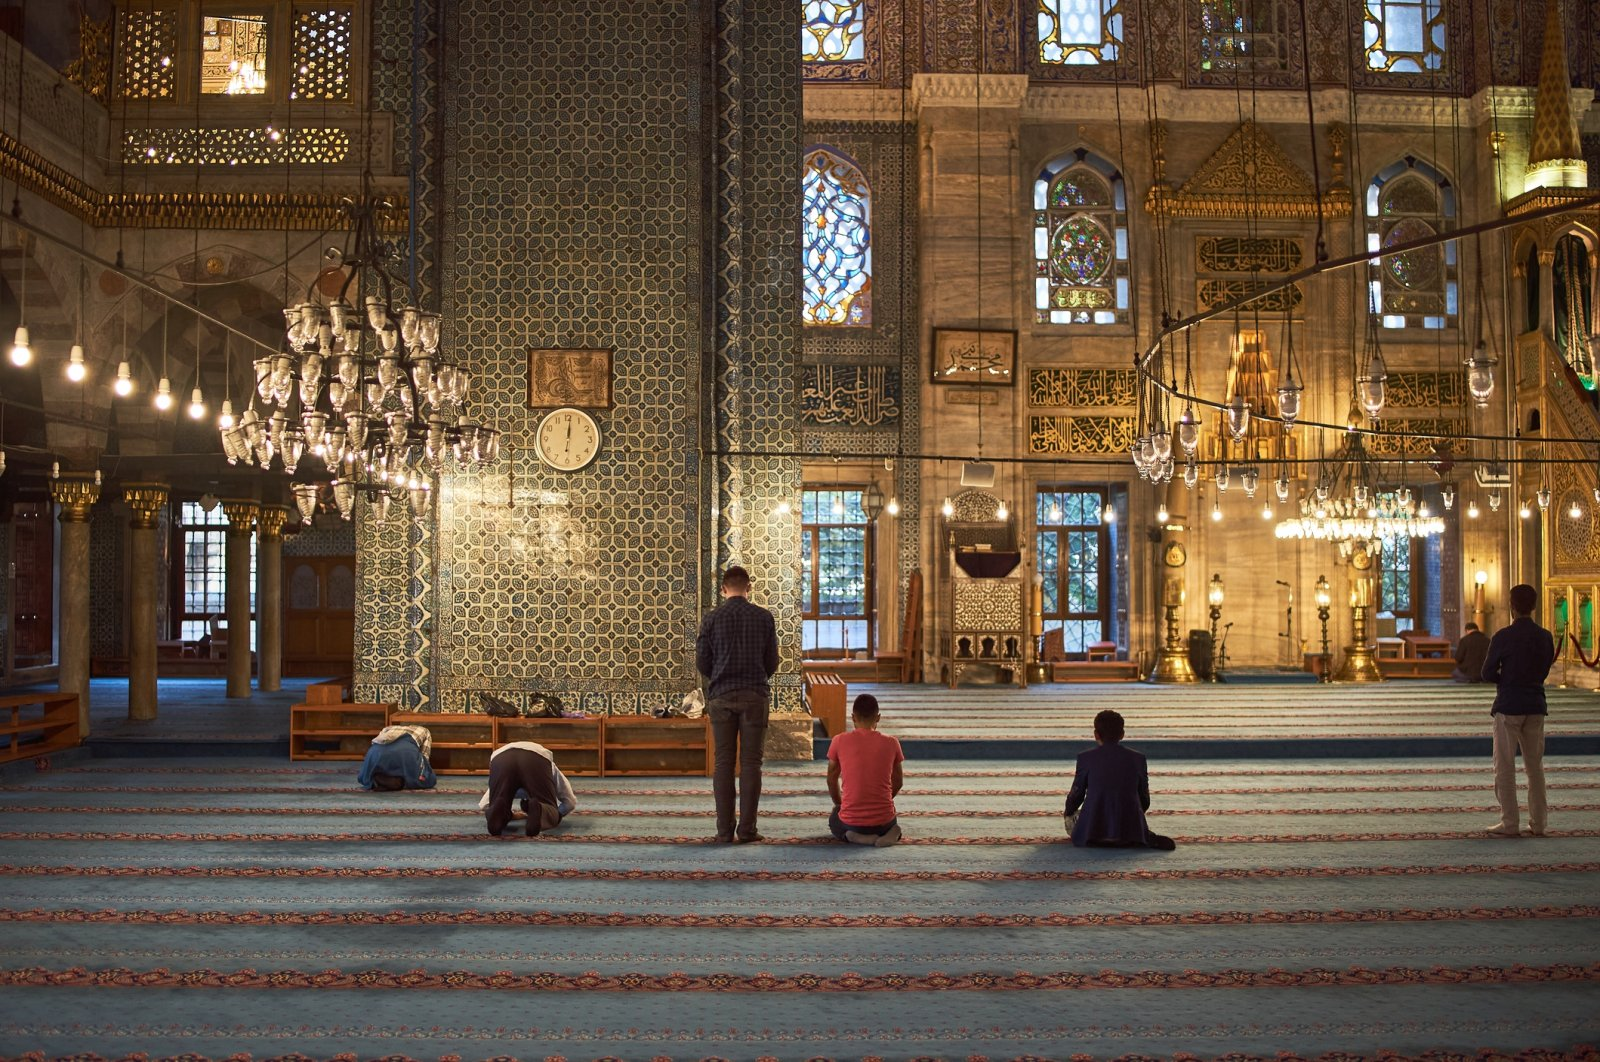 Muslim people pray at the iconic Yeni Cami mosque, which was built by the orders of Safiye Sultan and Hatice Turhan Sultan, in Istanbul. (iStock Photo)